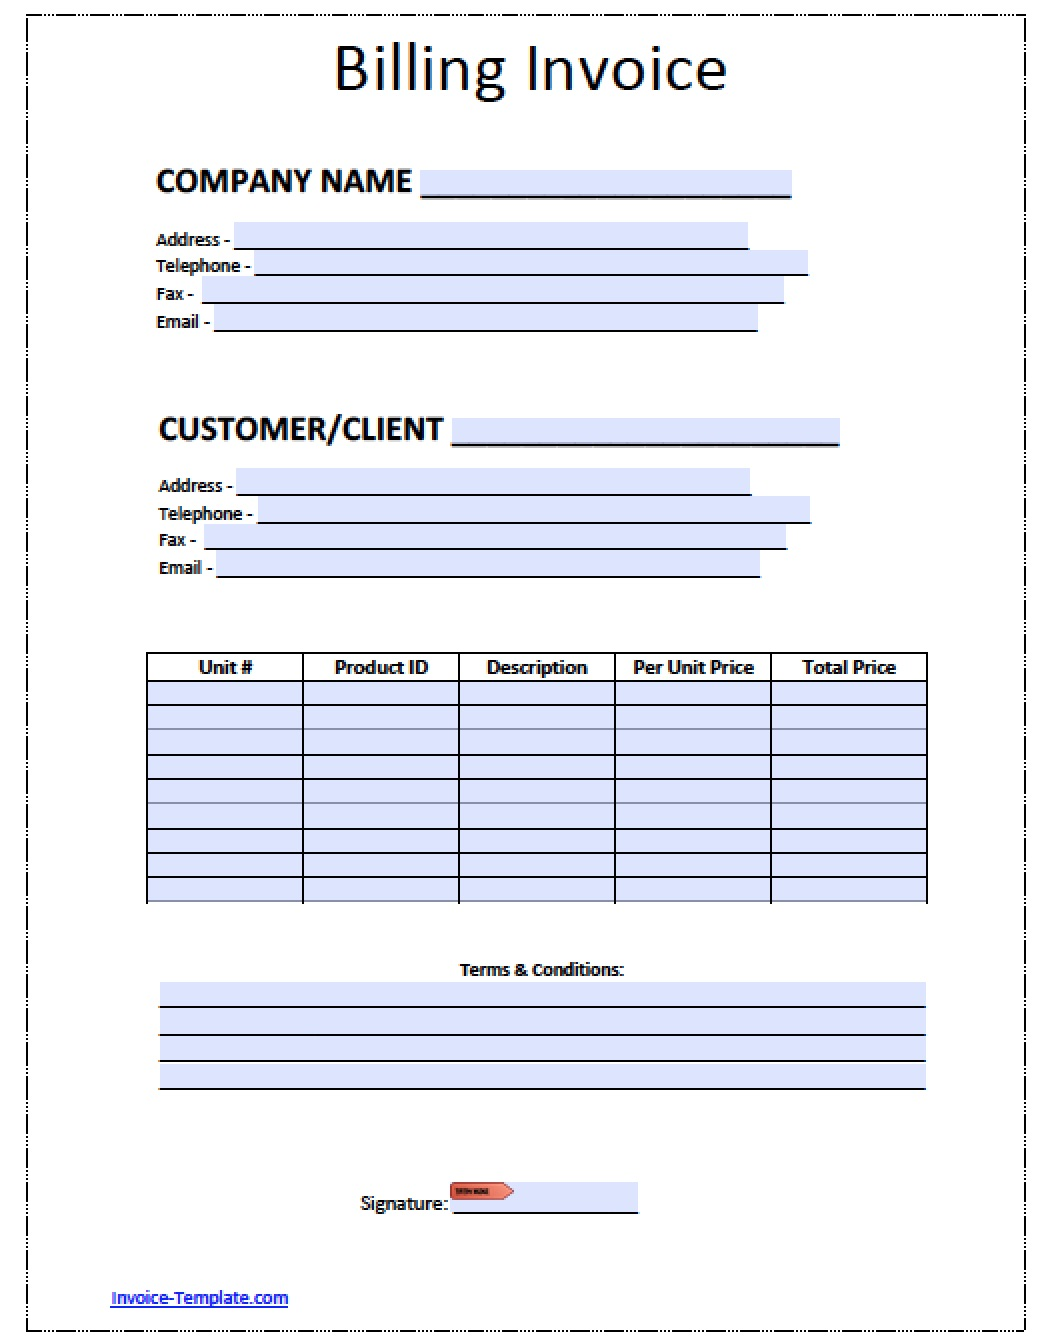 Free Billing Invoice Template Excel PDF Word Doc - Invoice template word free download